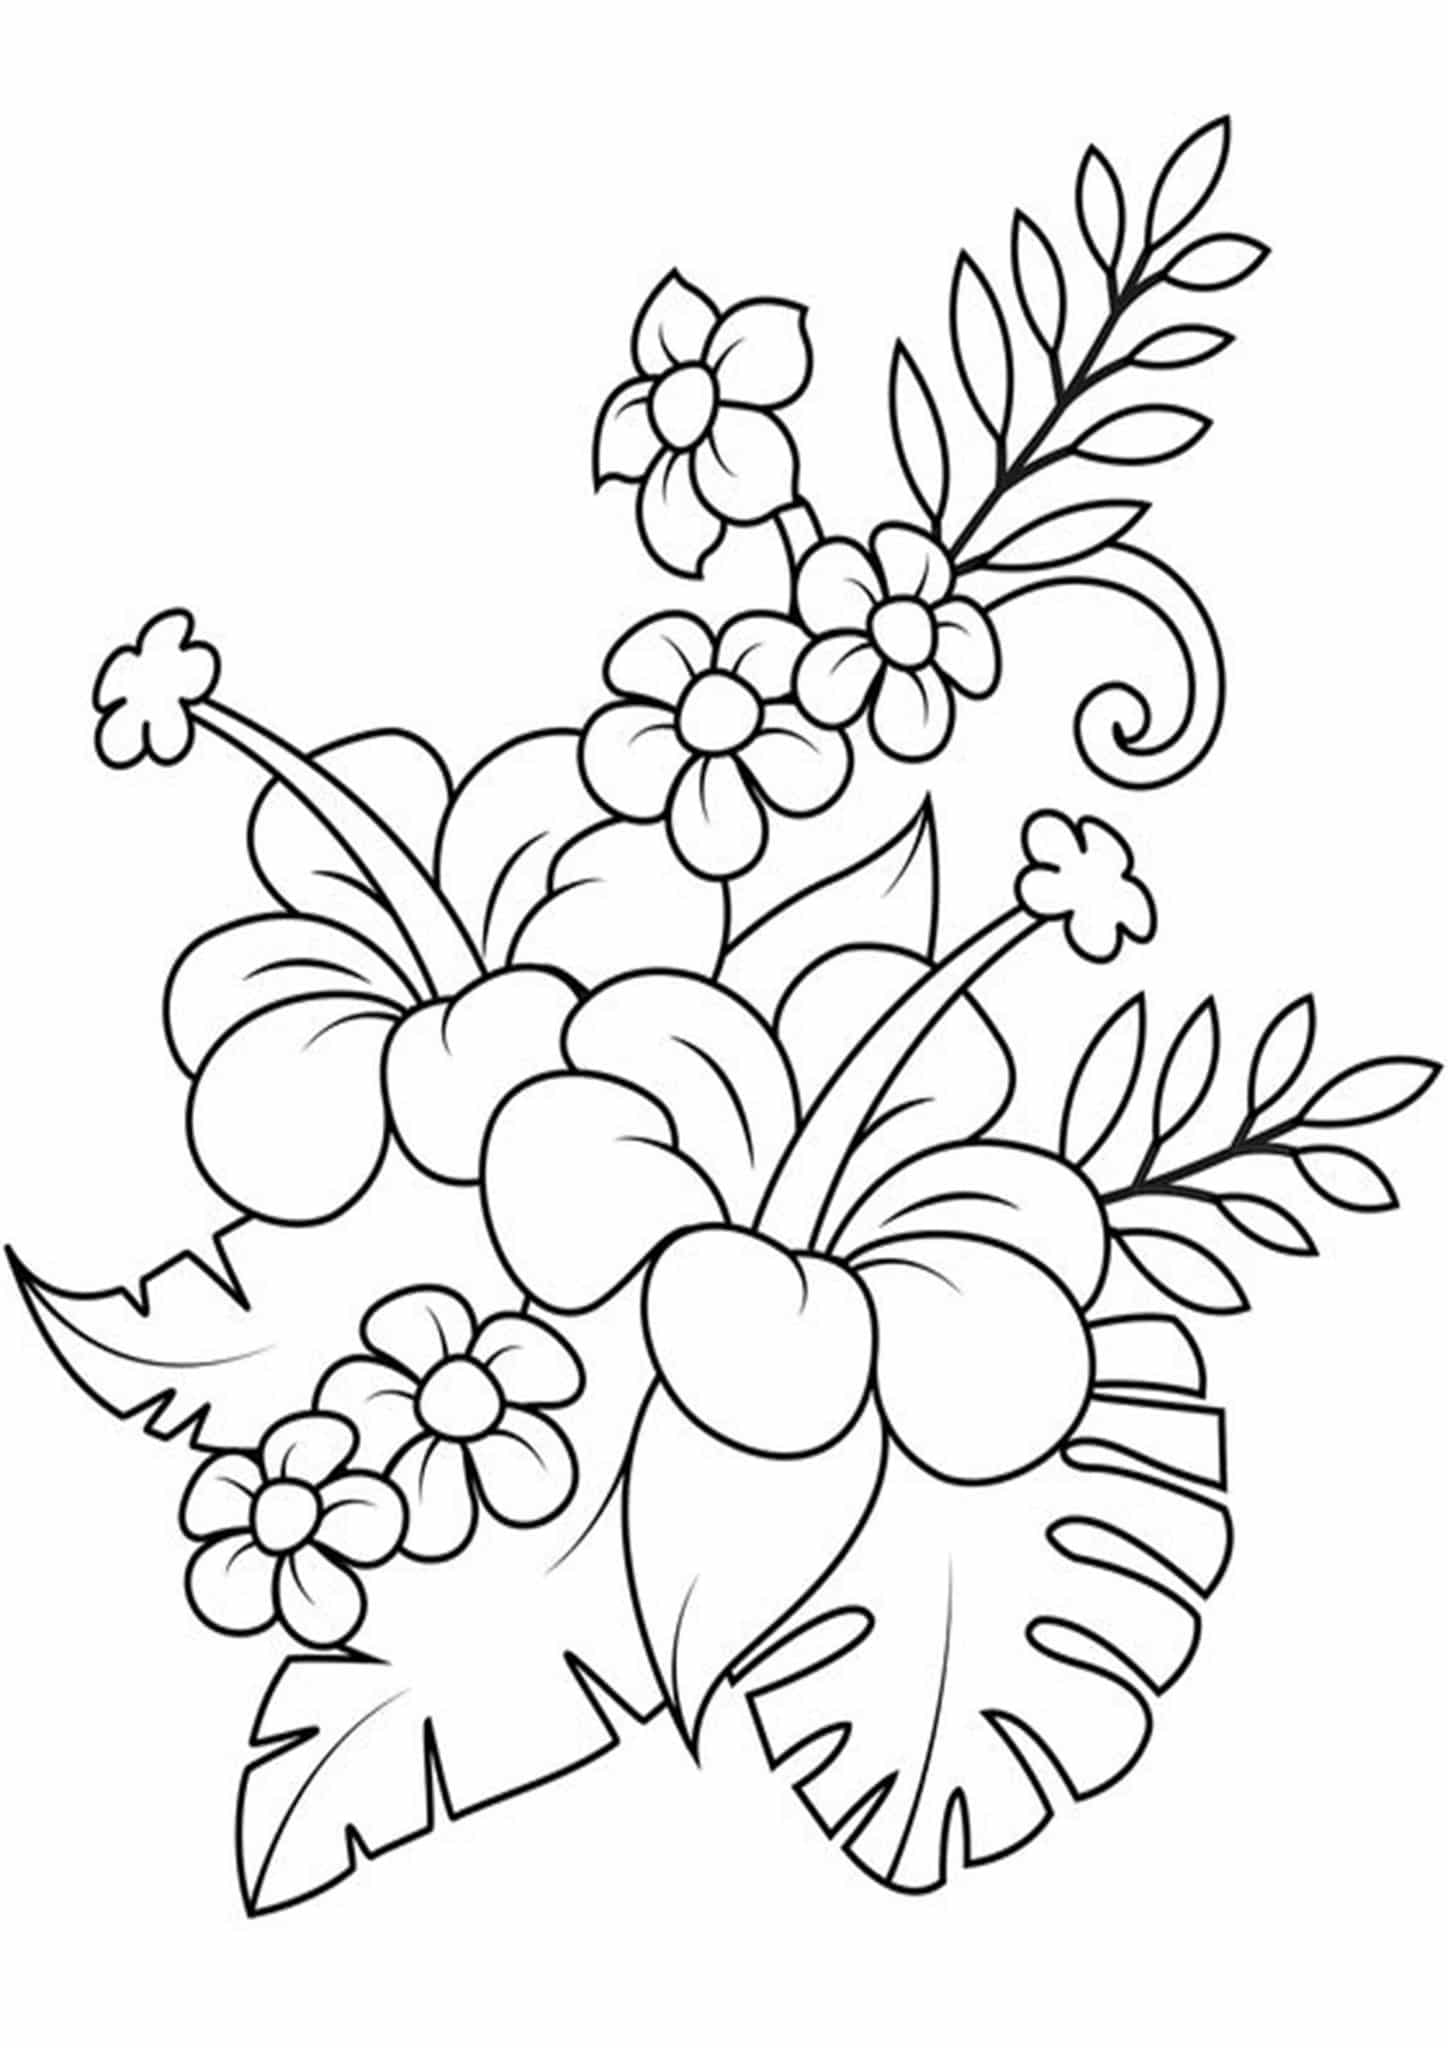 colouring page of flowers herbaceous perennial plant peony flower colouring pages flowers page of colouring